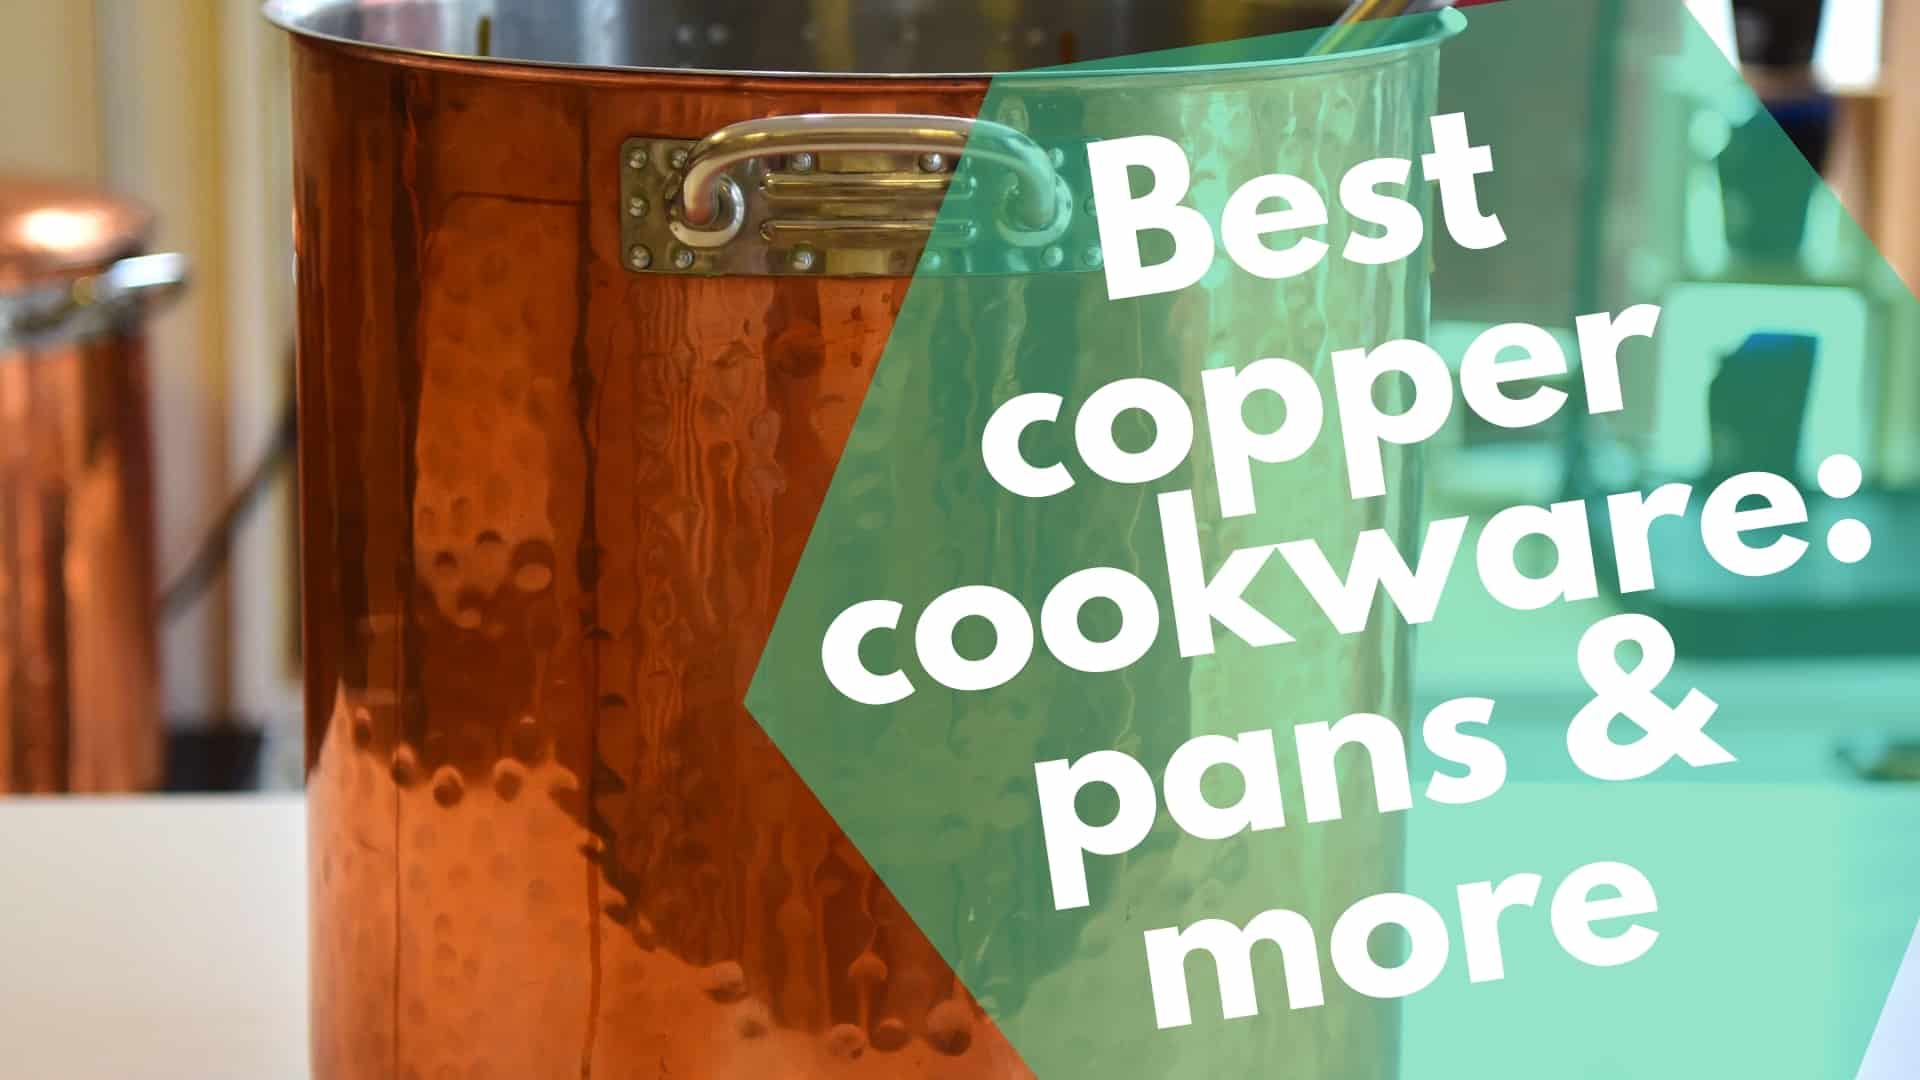 Best copper cookware: pans & more